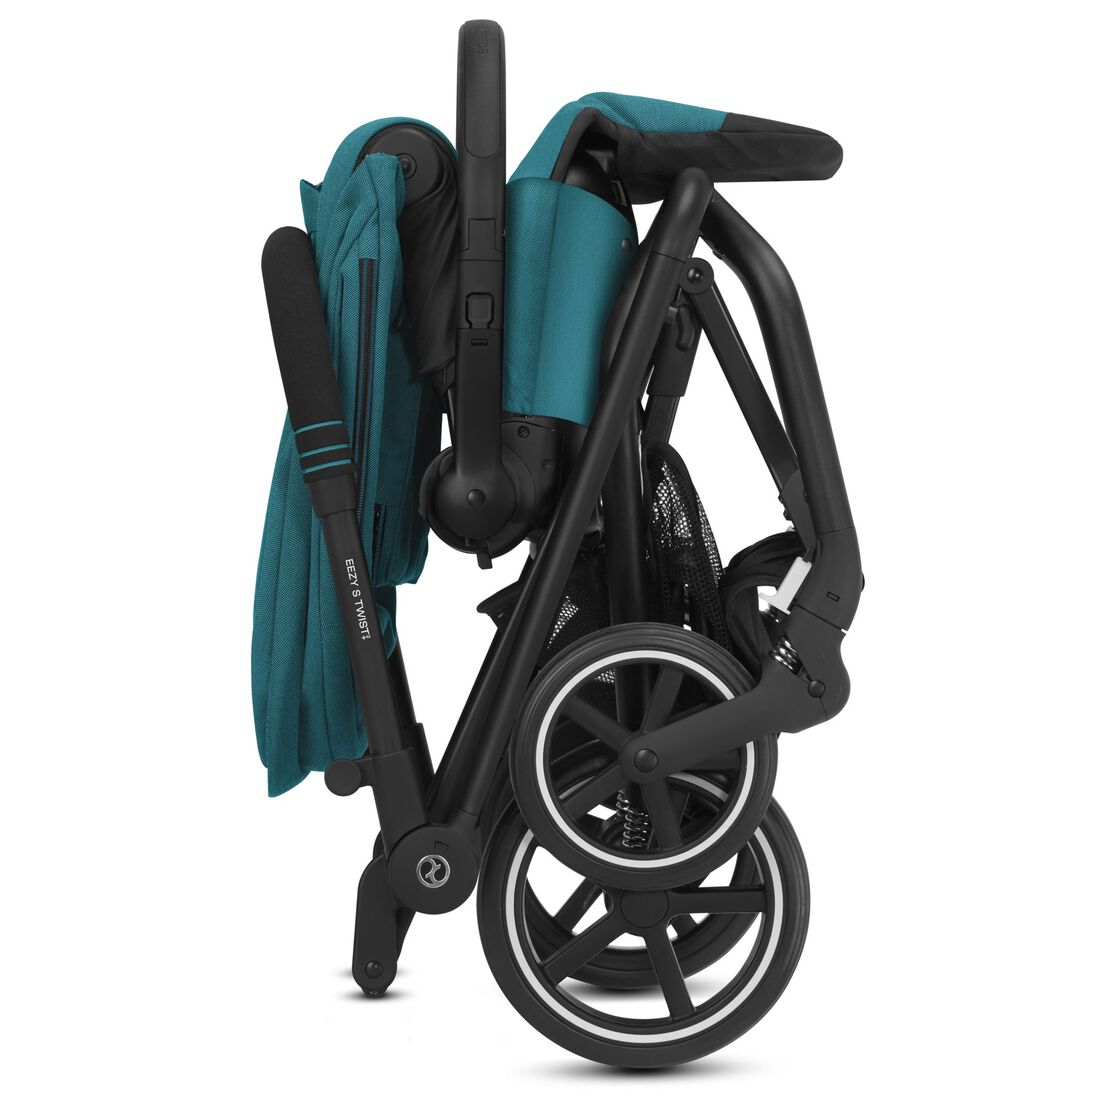 CYBEX Eezy S Twist+2 - River Blue (Schwarzer Rahmen) in River Blue (Black Frame) large Bild 5